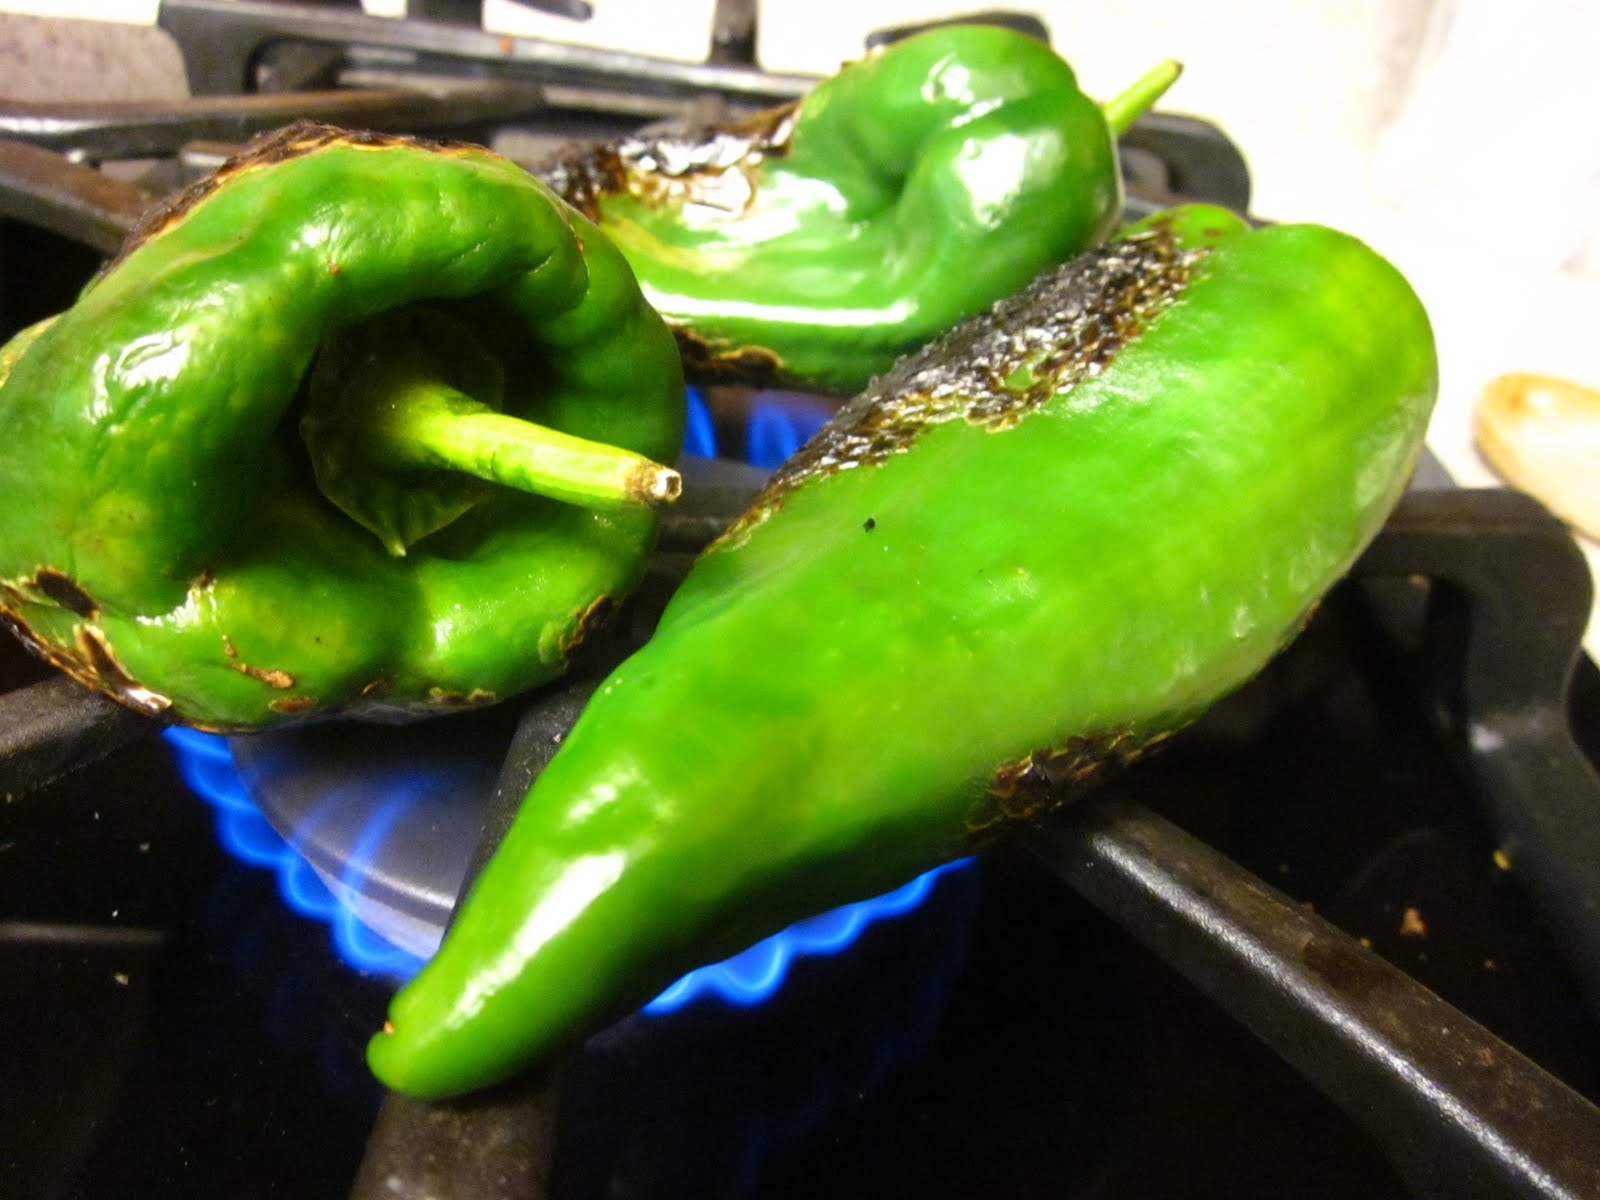 Baked Chile Rellenos with Corn and Crema adapted from Serious Eats